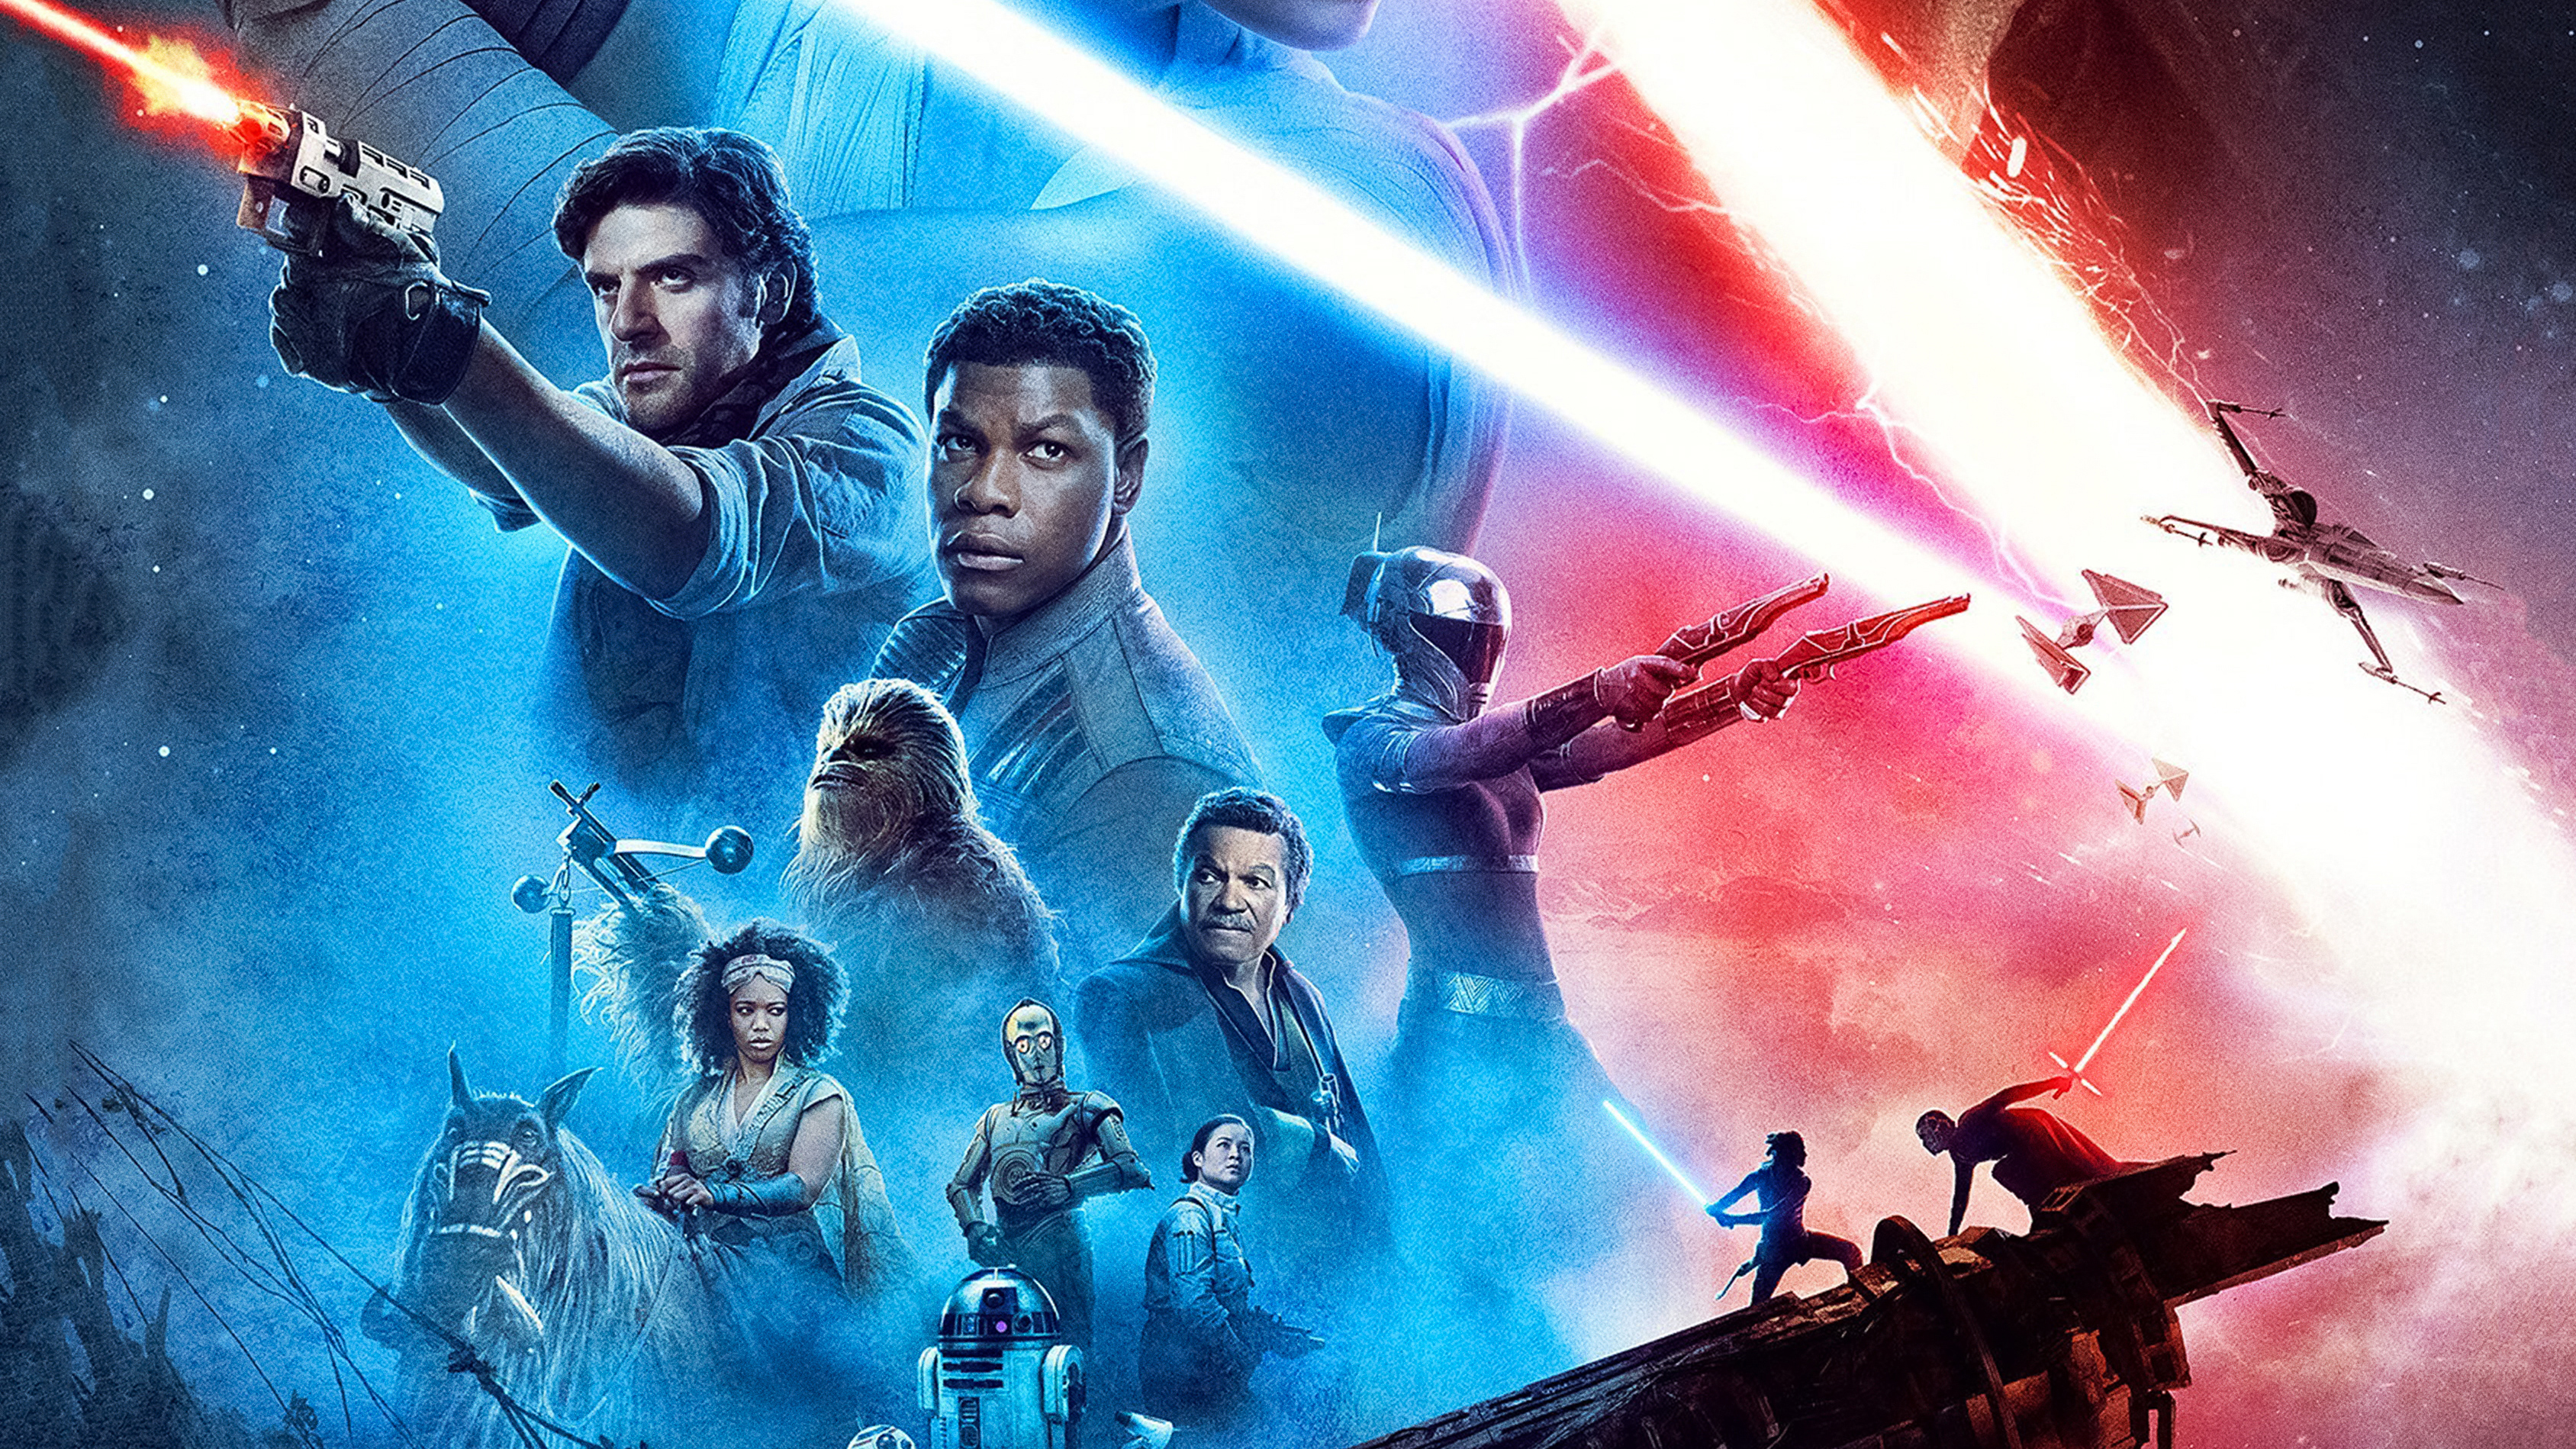 Star Wars The Rise Of Skywalker New Poster 4k, HD Movies, 4k